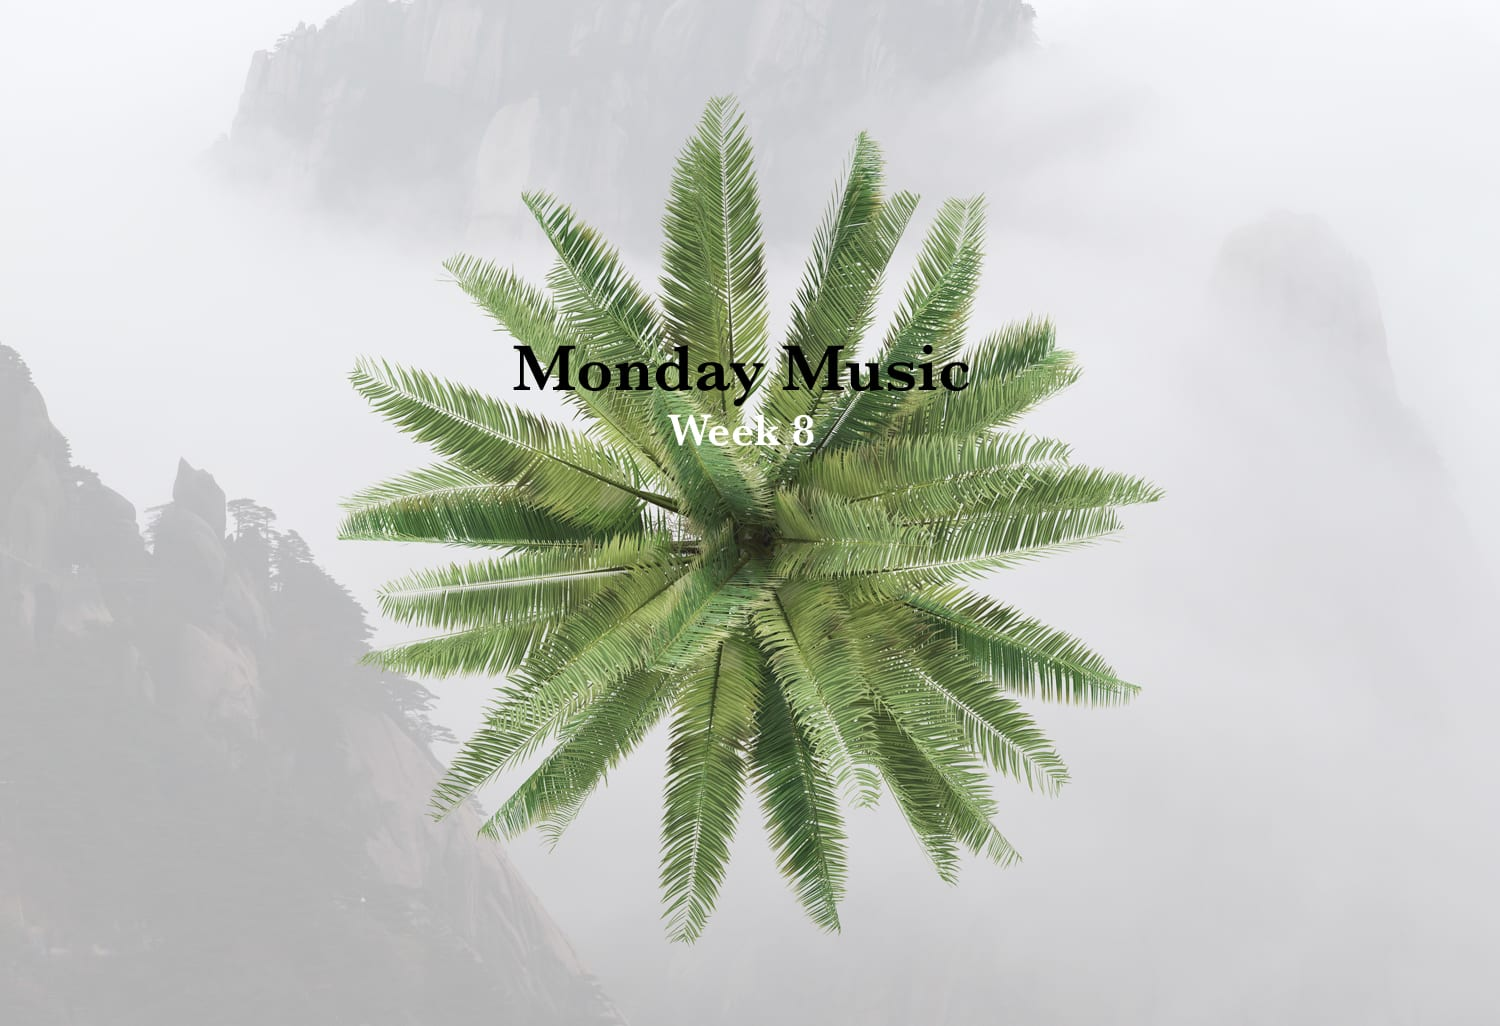 Introducing Monday Music